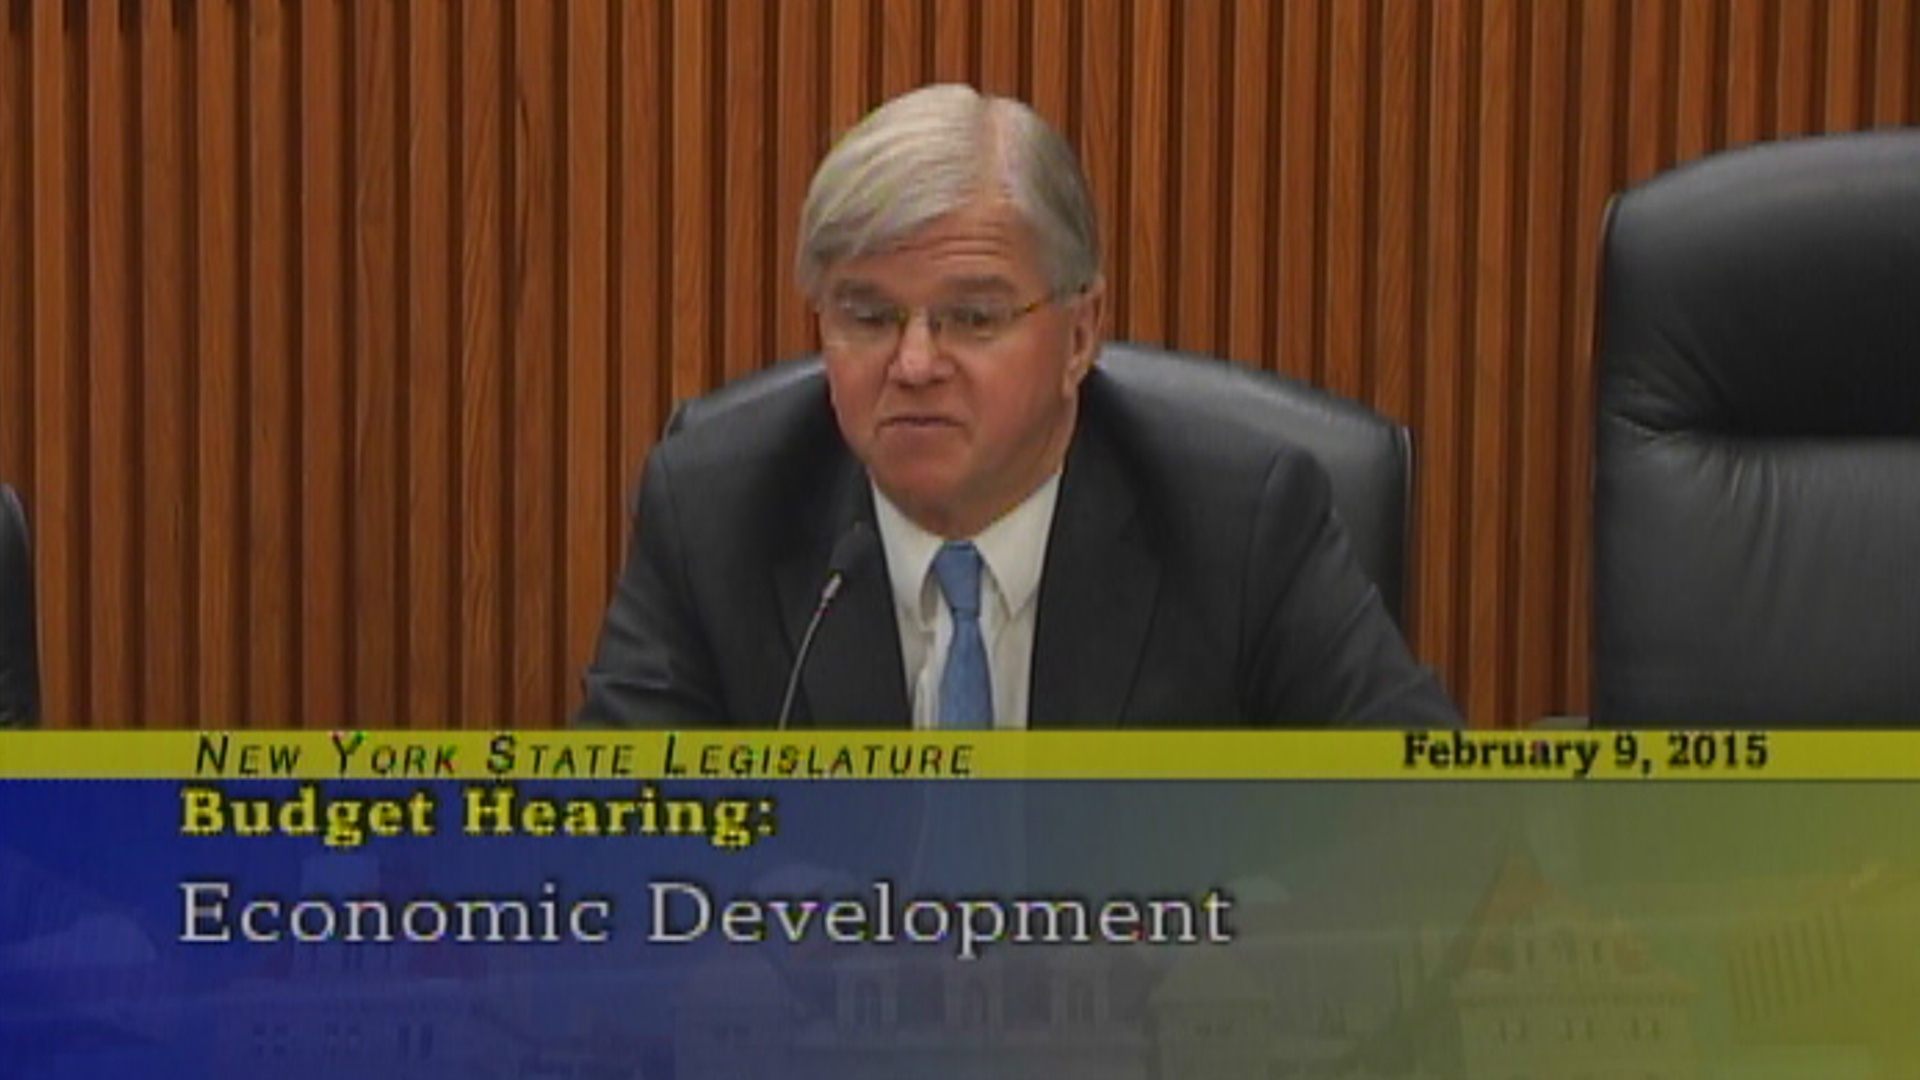 Economic Development Budget Hearing